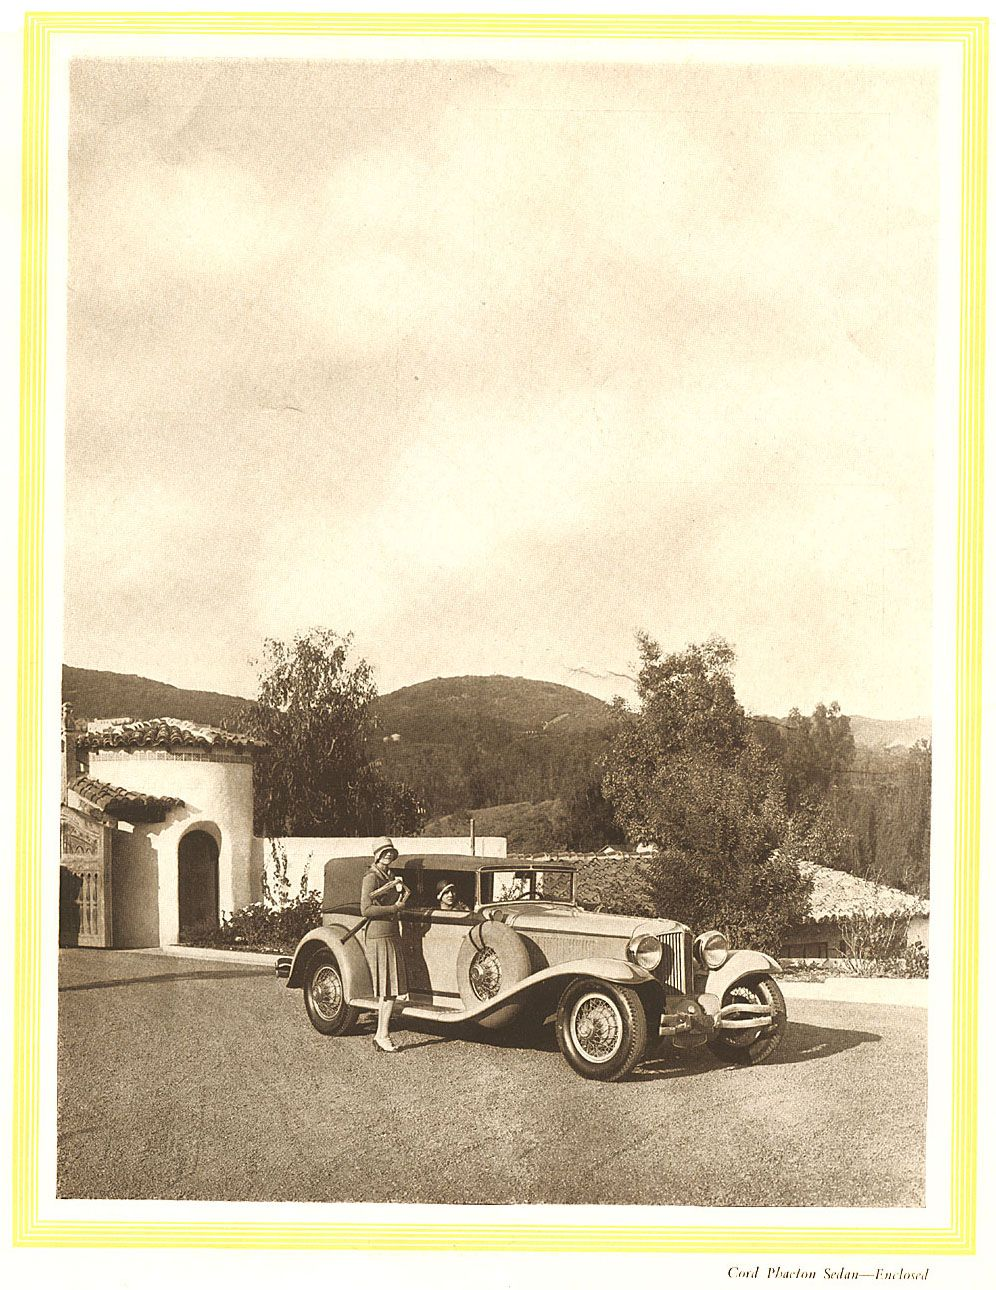 1929 Cord Phaeton Sedan - Enclosed (996×1290)